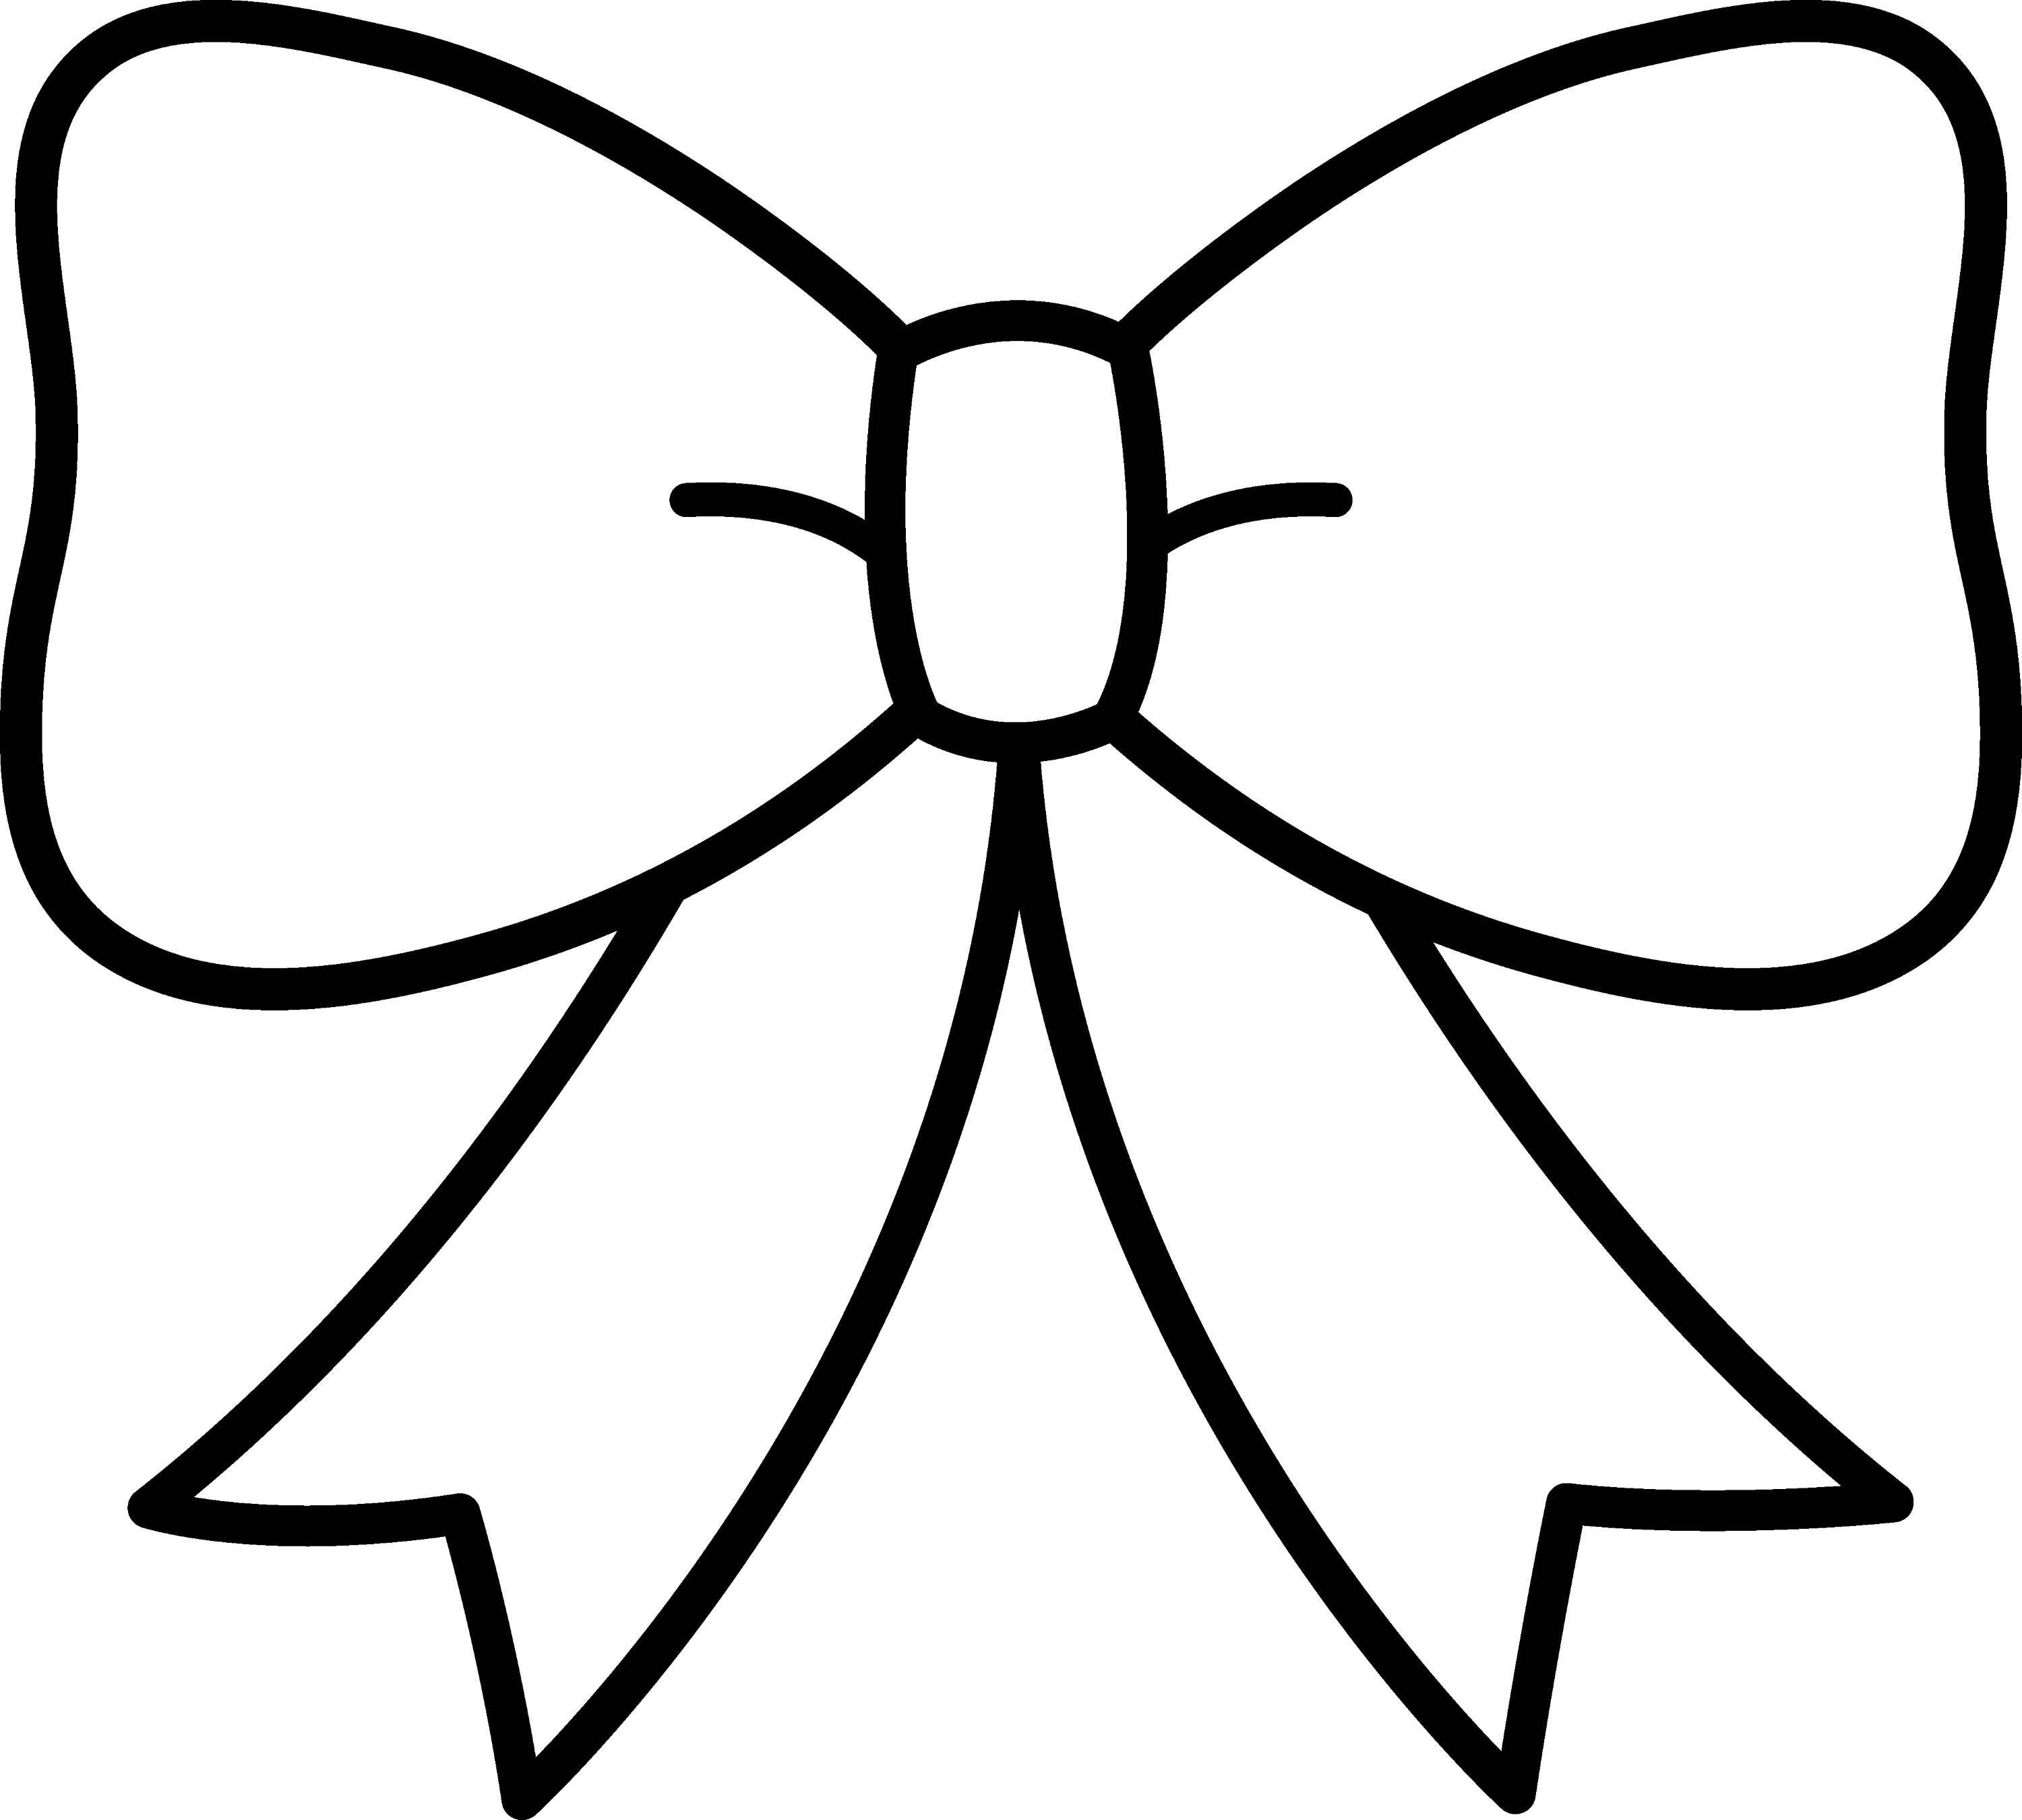 Black And White Bow Design